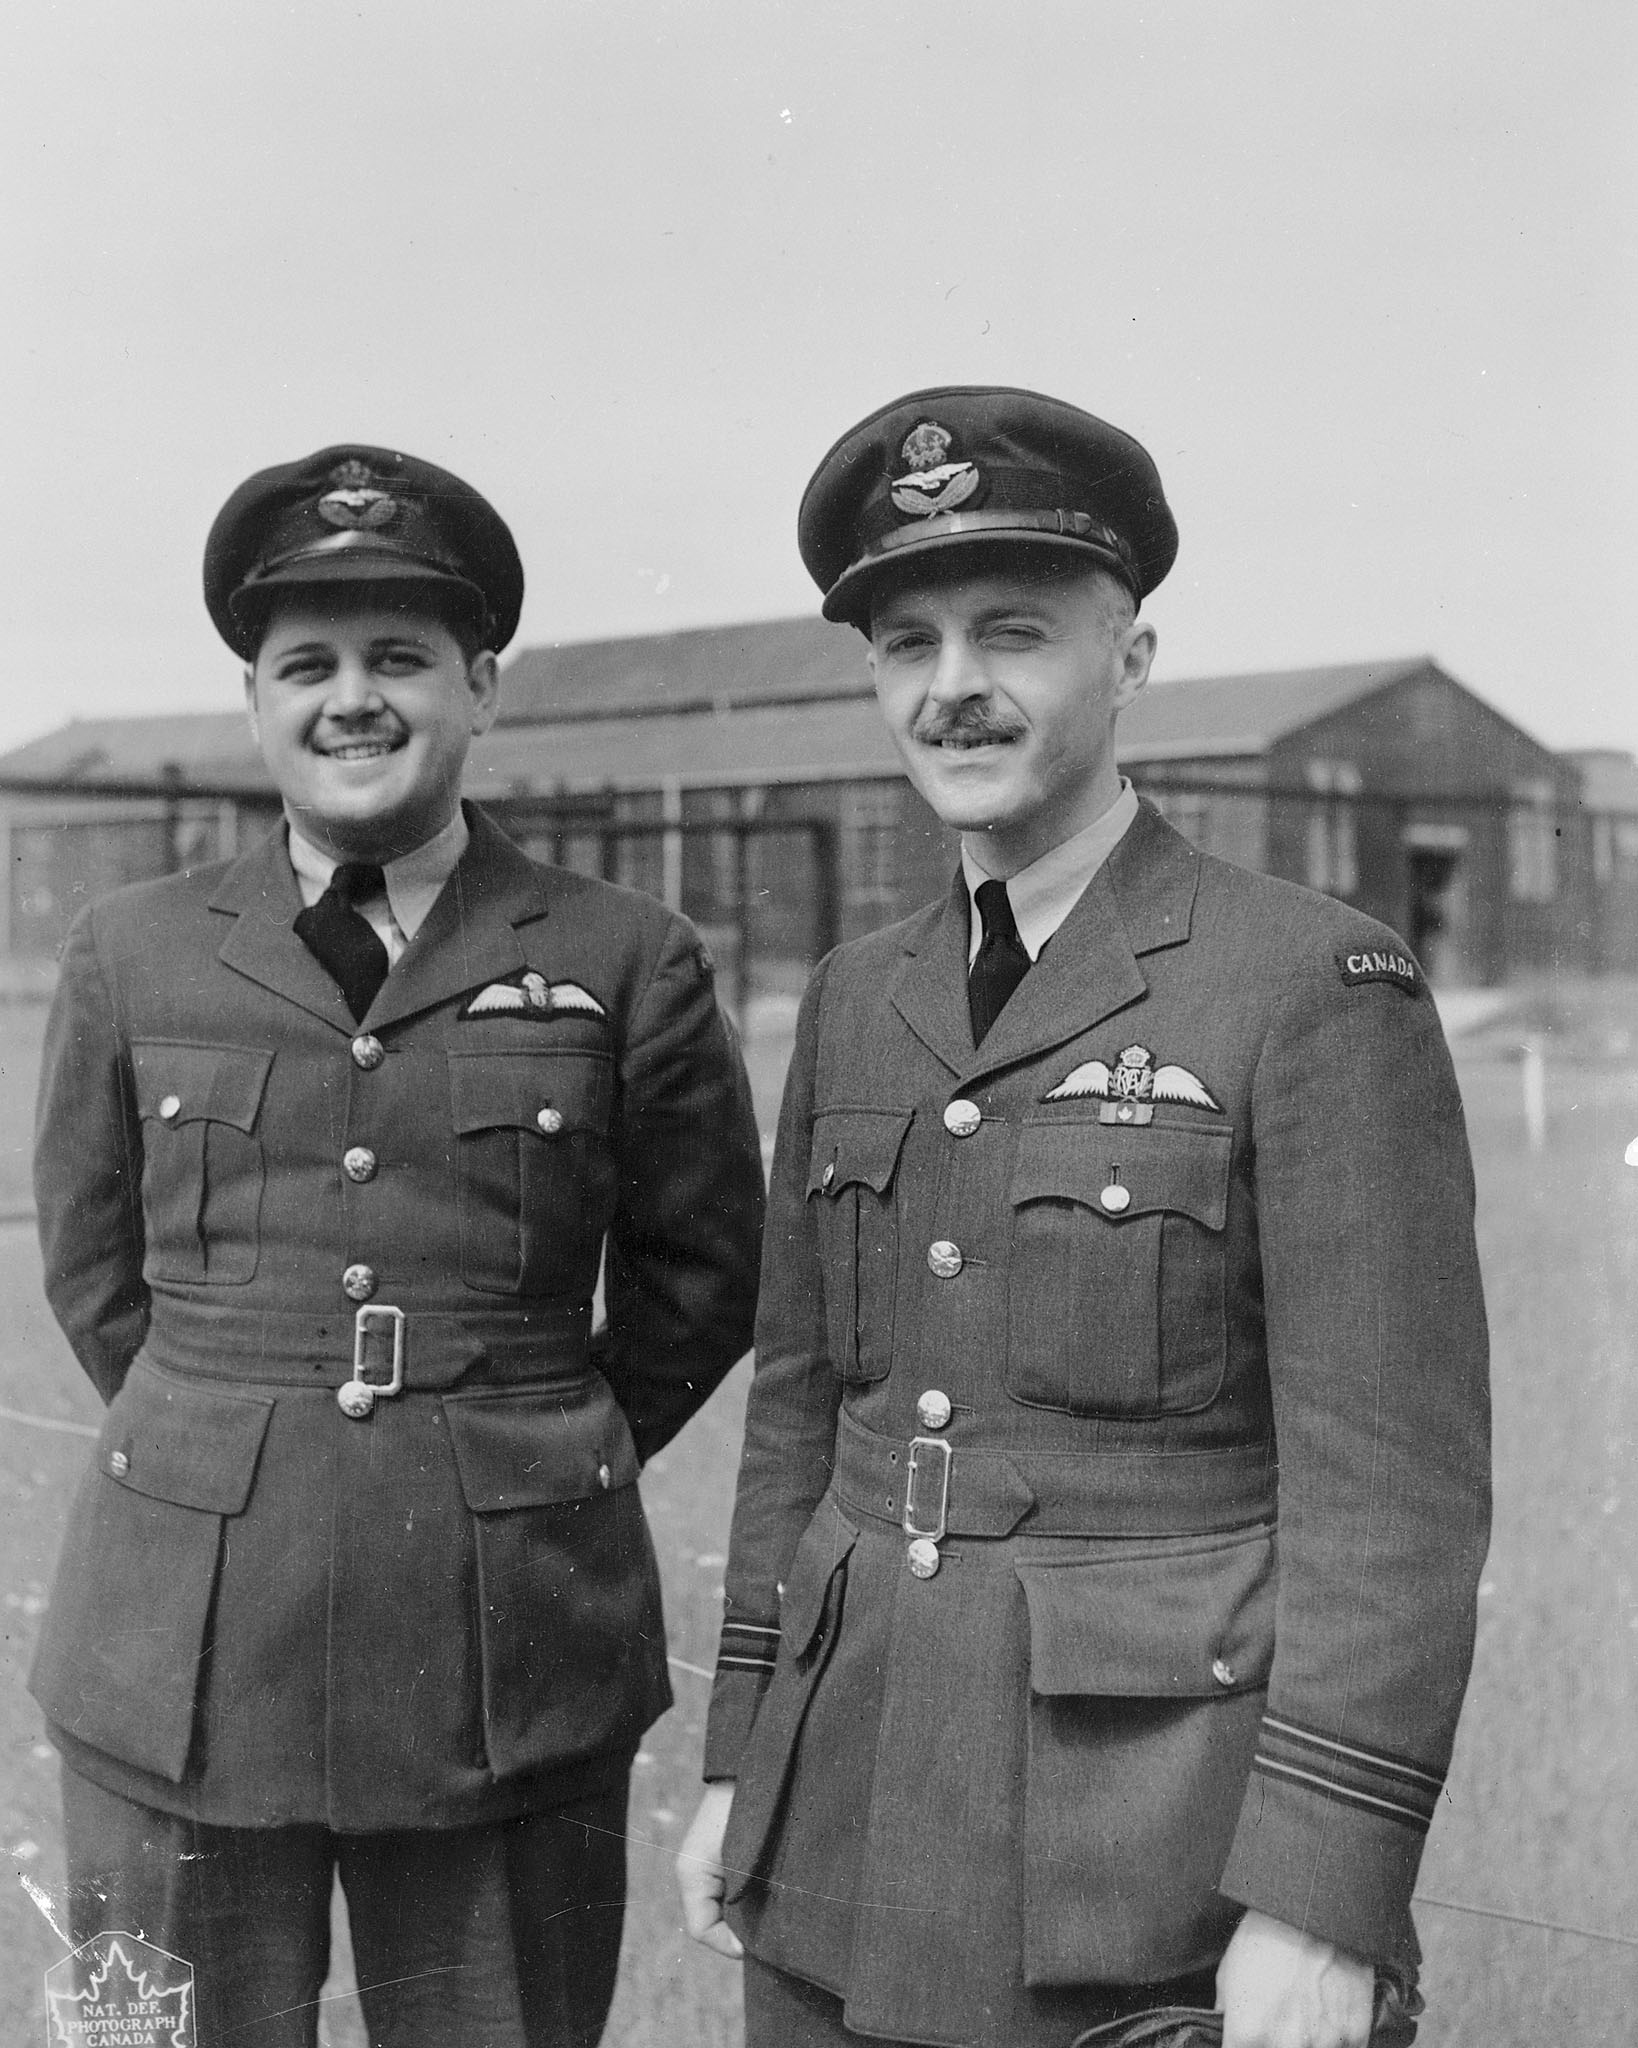 "Two captains of the Canso flying boats operating with 162 Squadron against German submarines in the North Atlantic: (left) Flying Officer Bernard ""Denny"" Denomy of Chatham, Ontario, and Flight Lieutenant Dave Hornell of Mimico, Ontario. Flight Lieutenant Hornell was awarded the Victoria Cross posthumously for his gallantry when his Canso crashed in the North Atlantic. Flying Officer Denomy was his co-pilot. PHOTO: DND Archives, PL-30823"